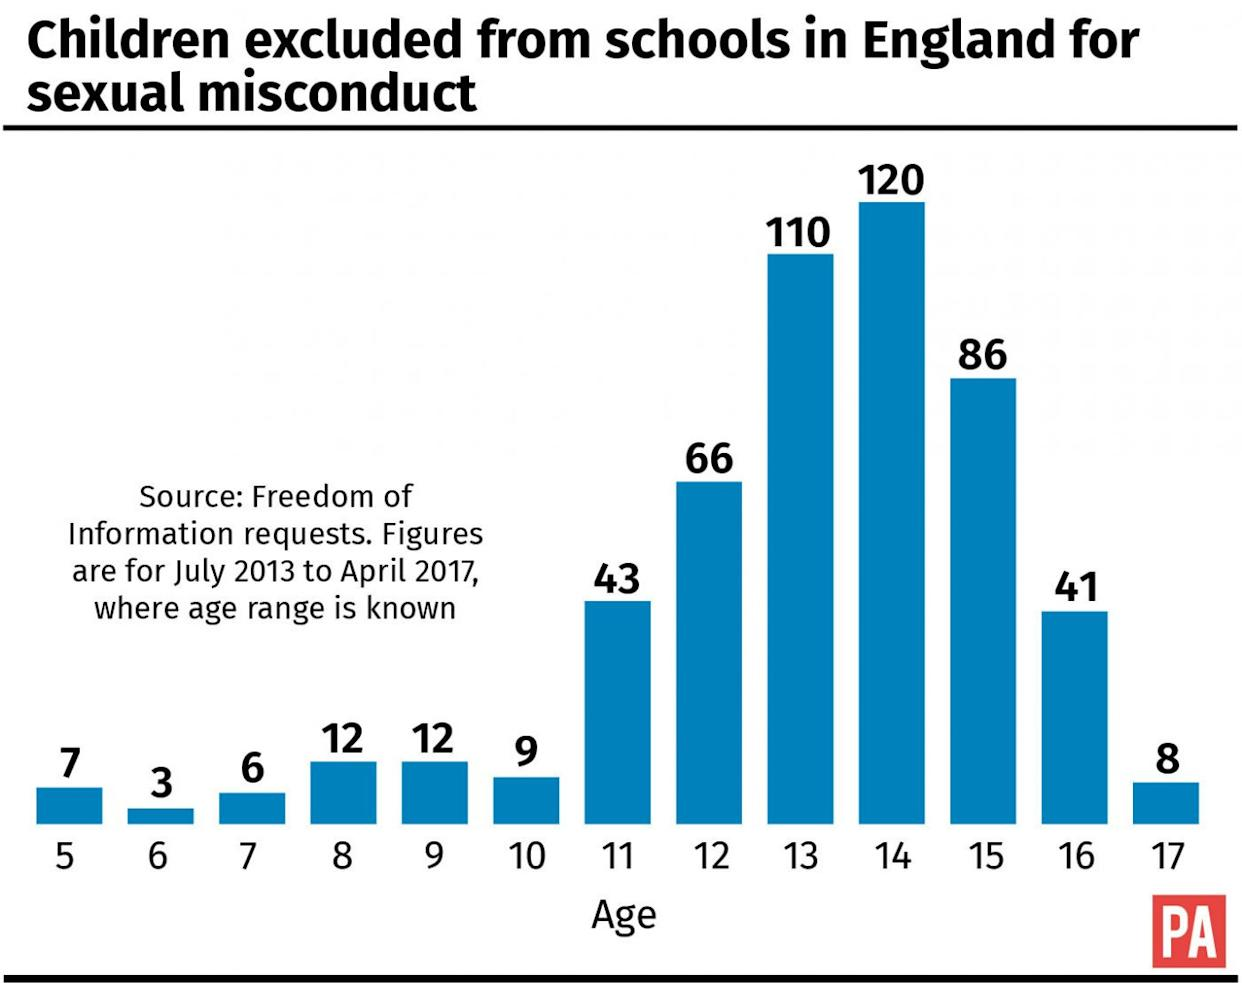 Children excluded from schools in England for sexual misconduct